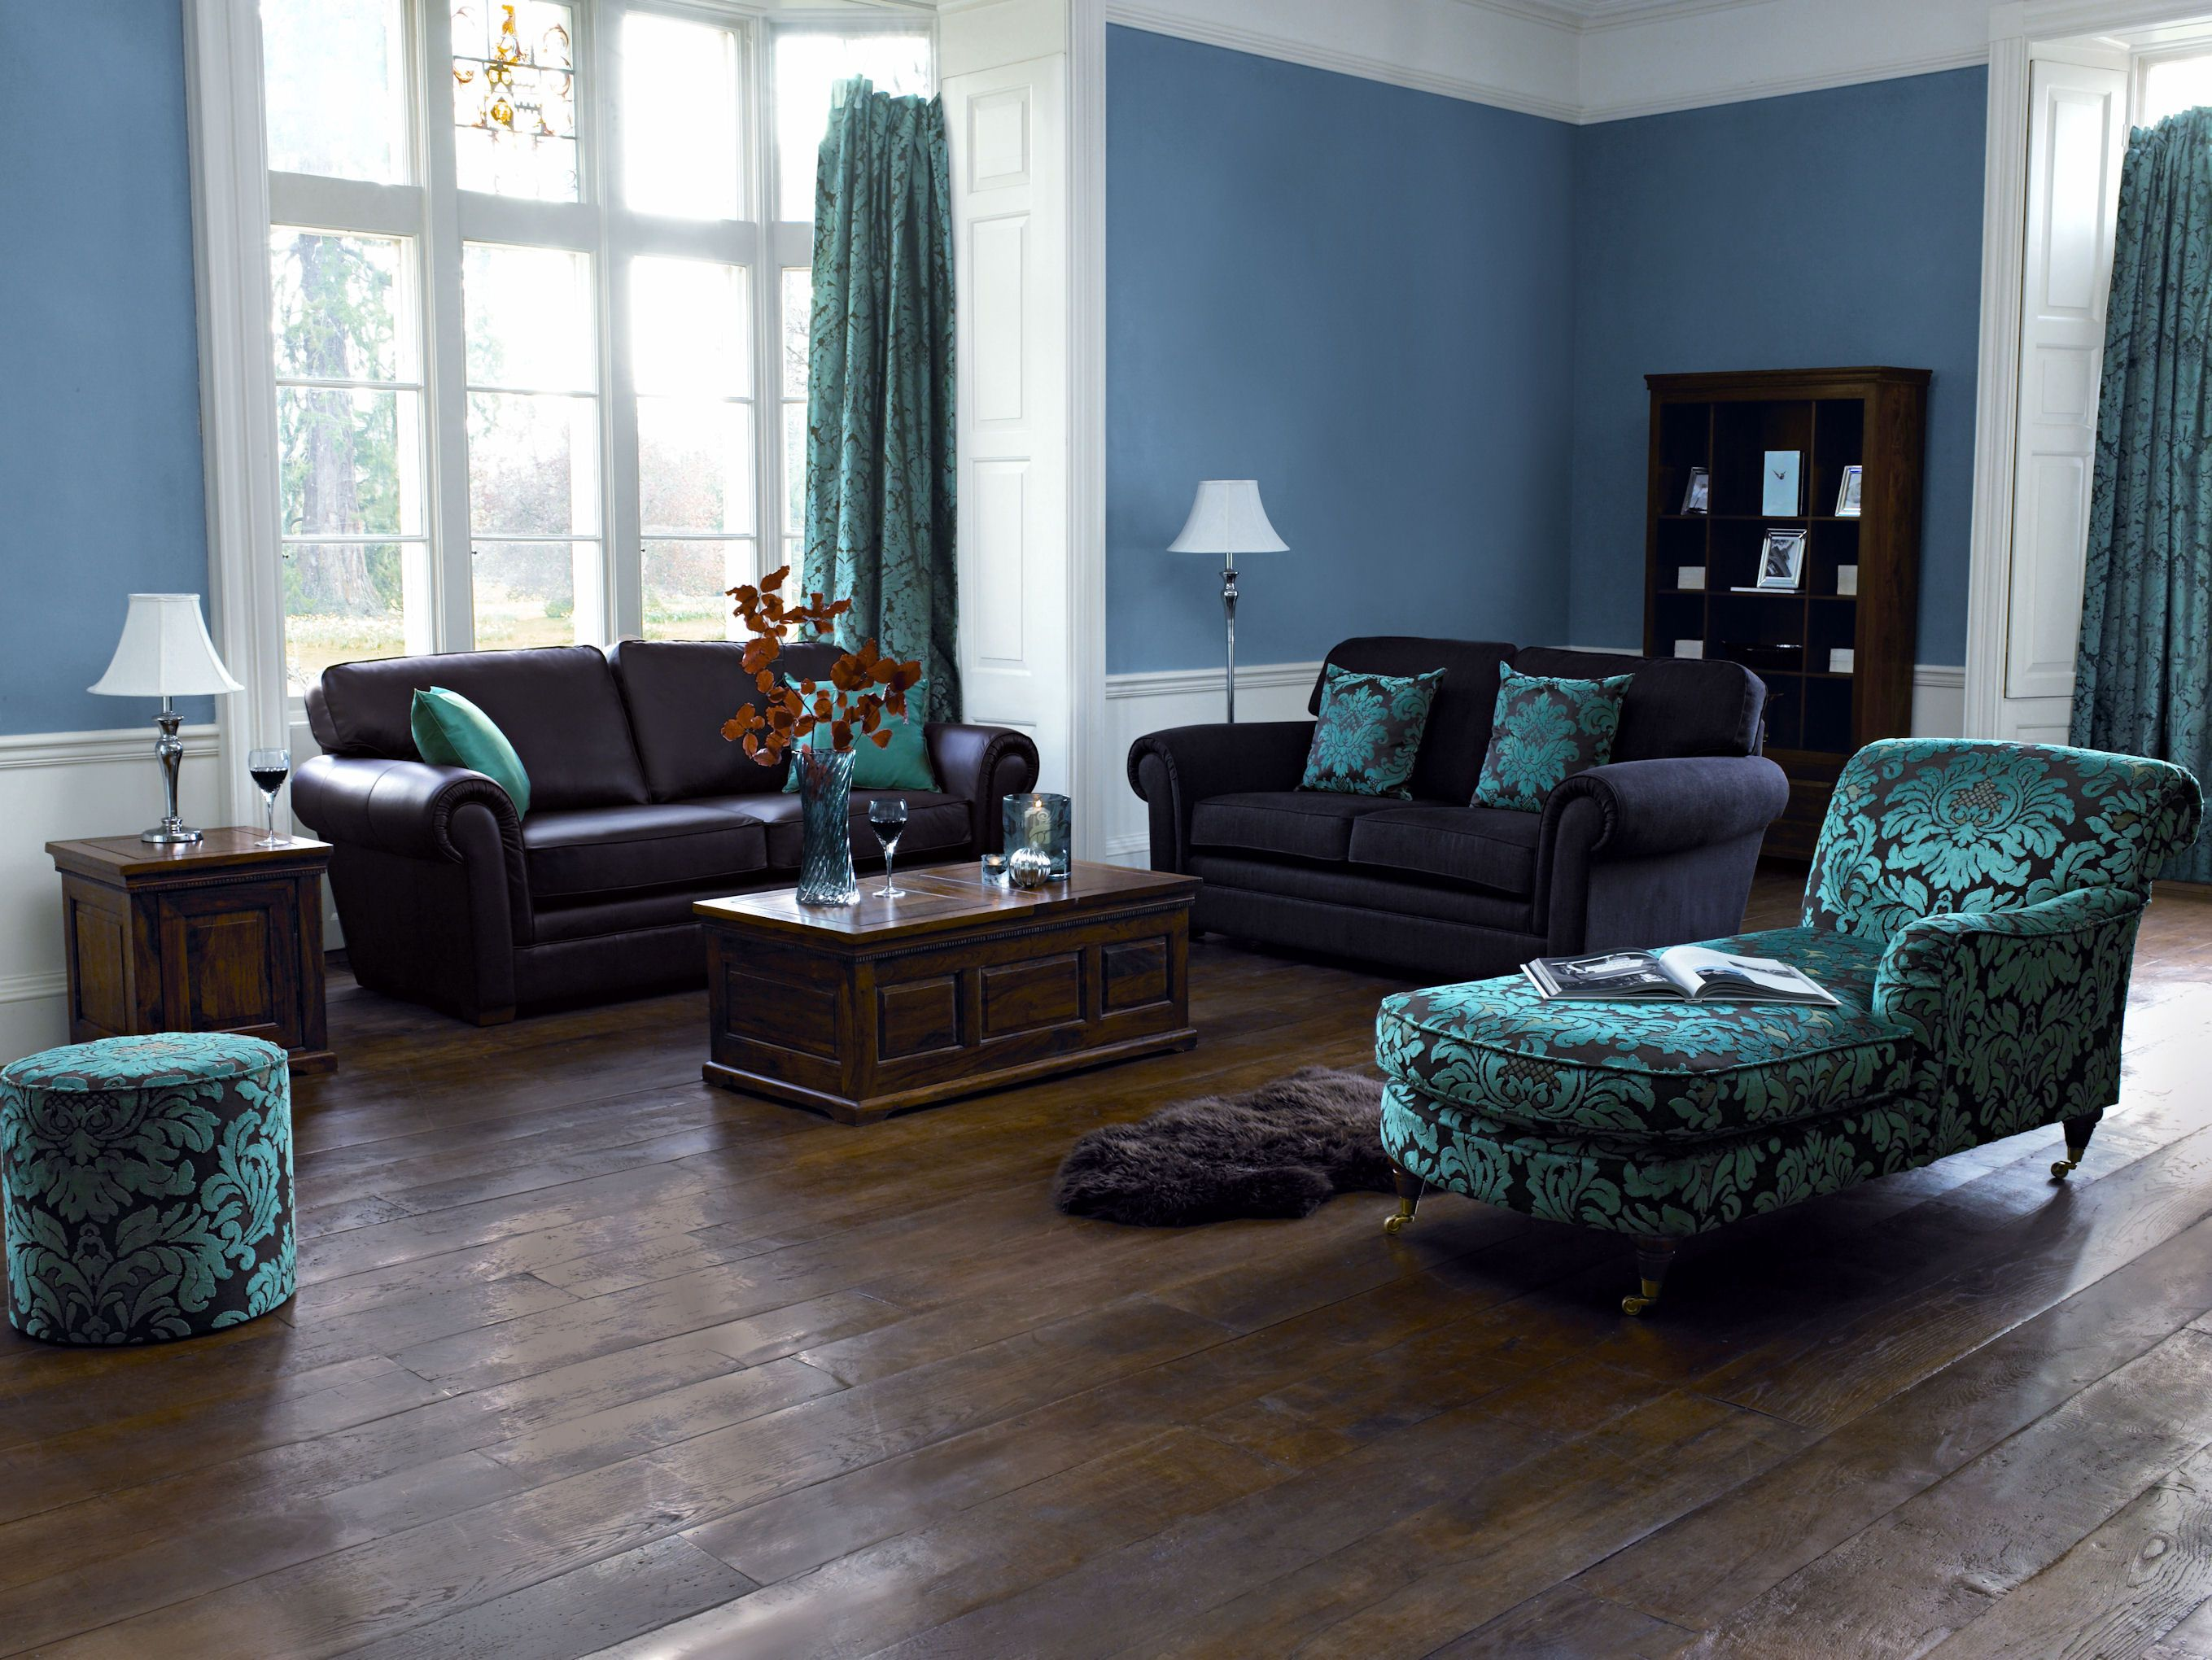 What Color To Paint Your Living Room Blue Paint Color Ideas For Living Room With Dark Furniture And